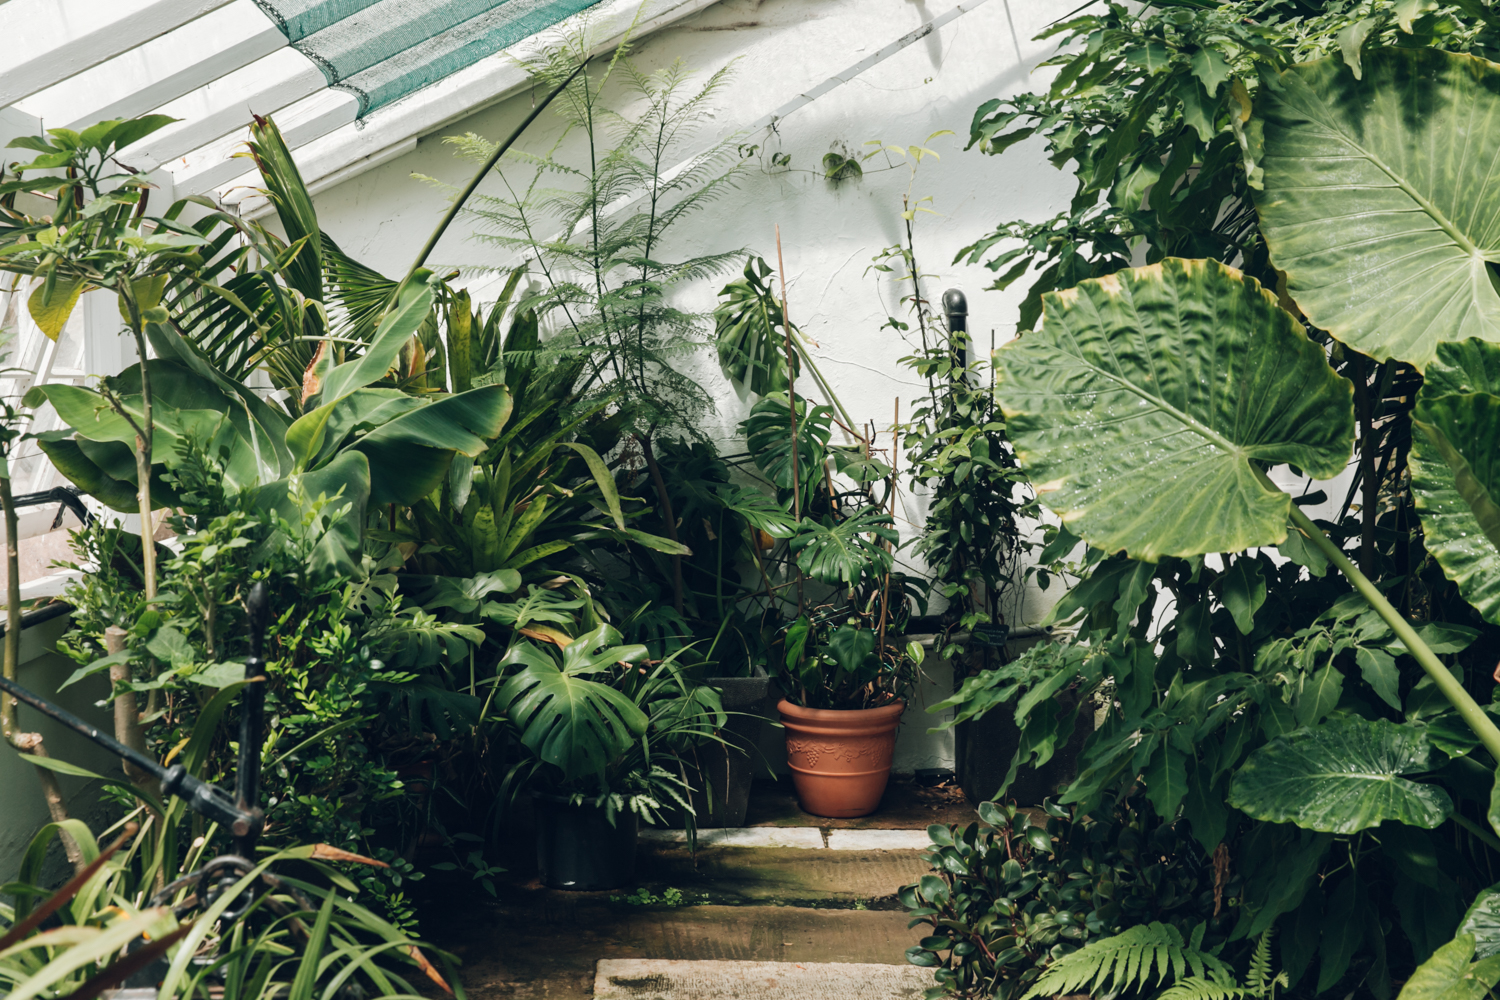 Five Plant Obsessed Instagram Accounts To Follow